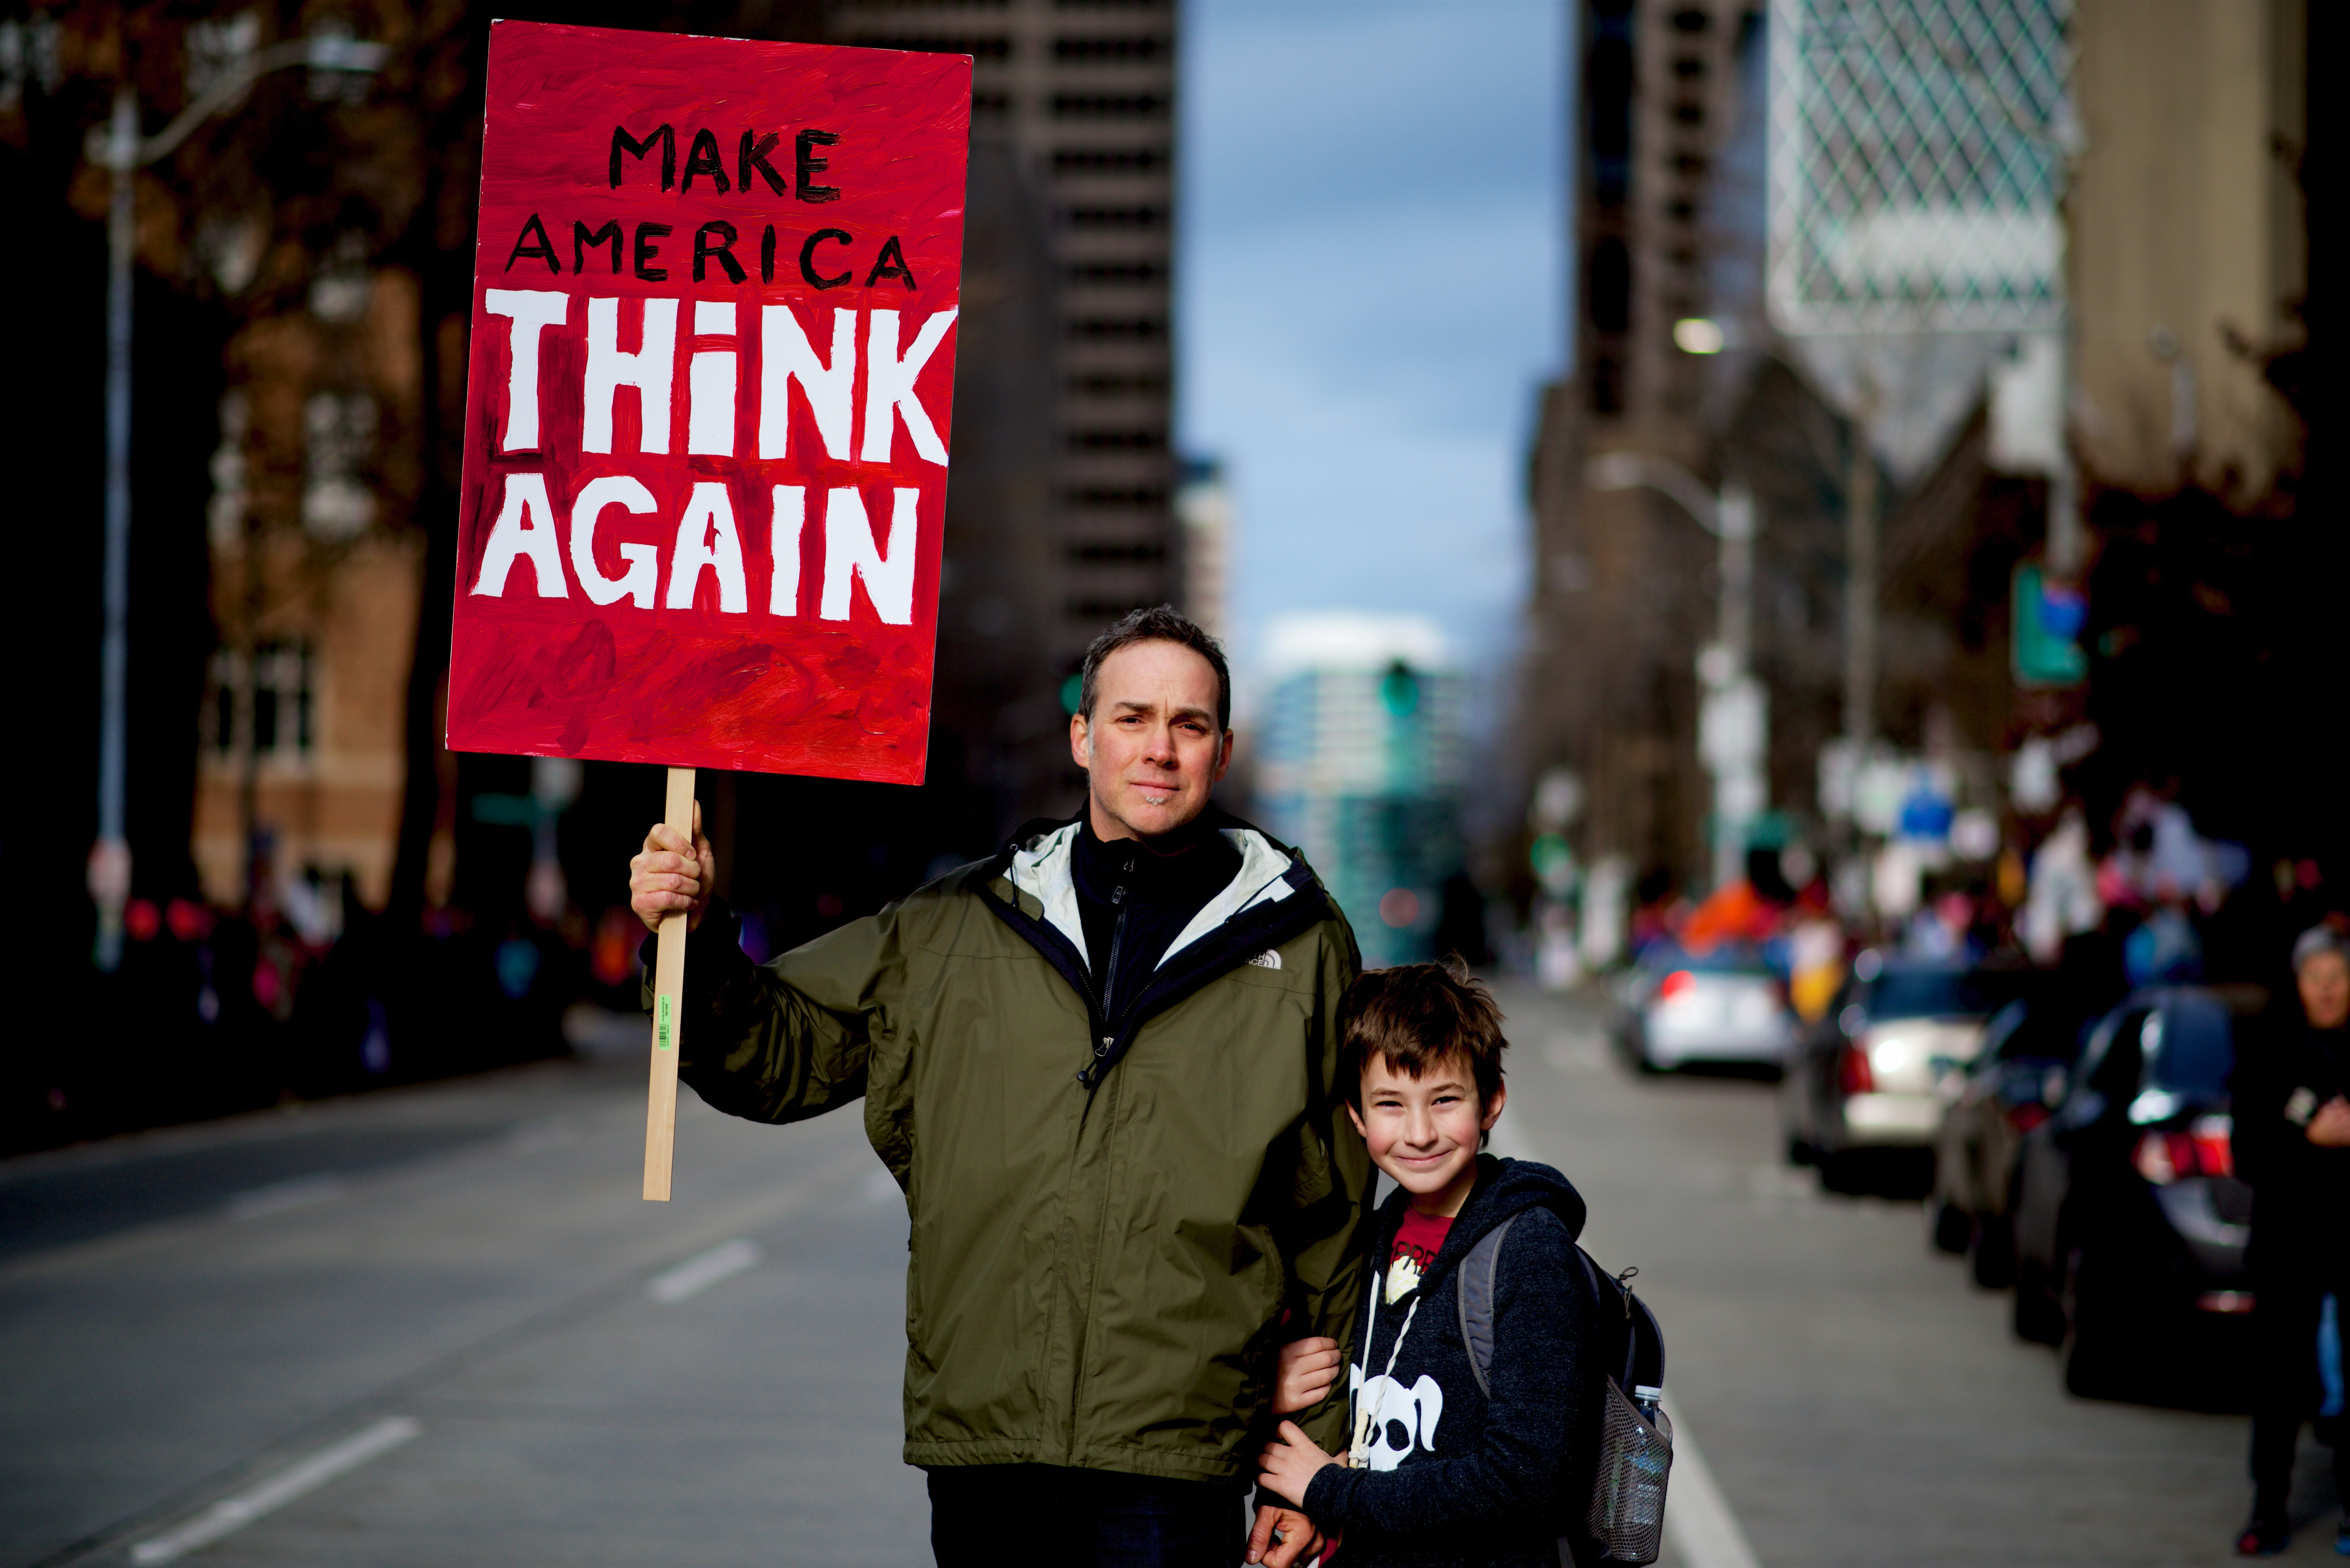 """Amid city streetsm a father holds up a sign reading """"Make America Think Again"""" as his son holds his hand"""